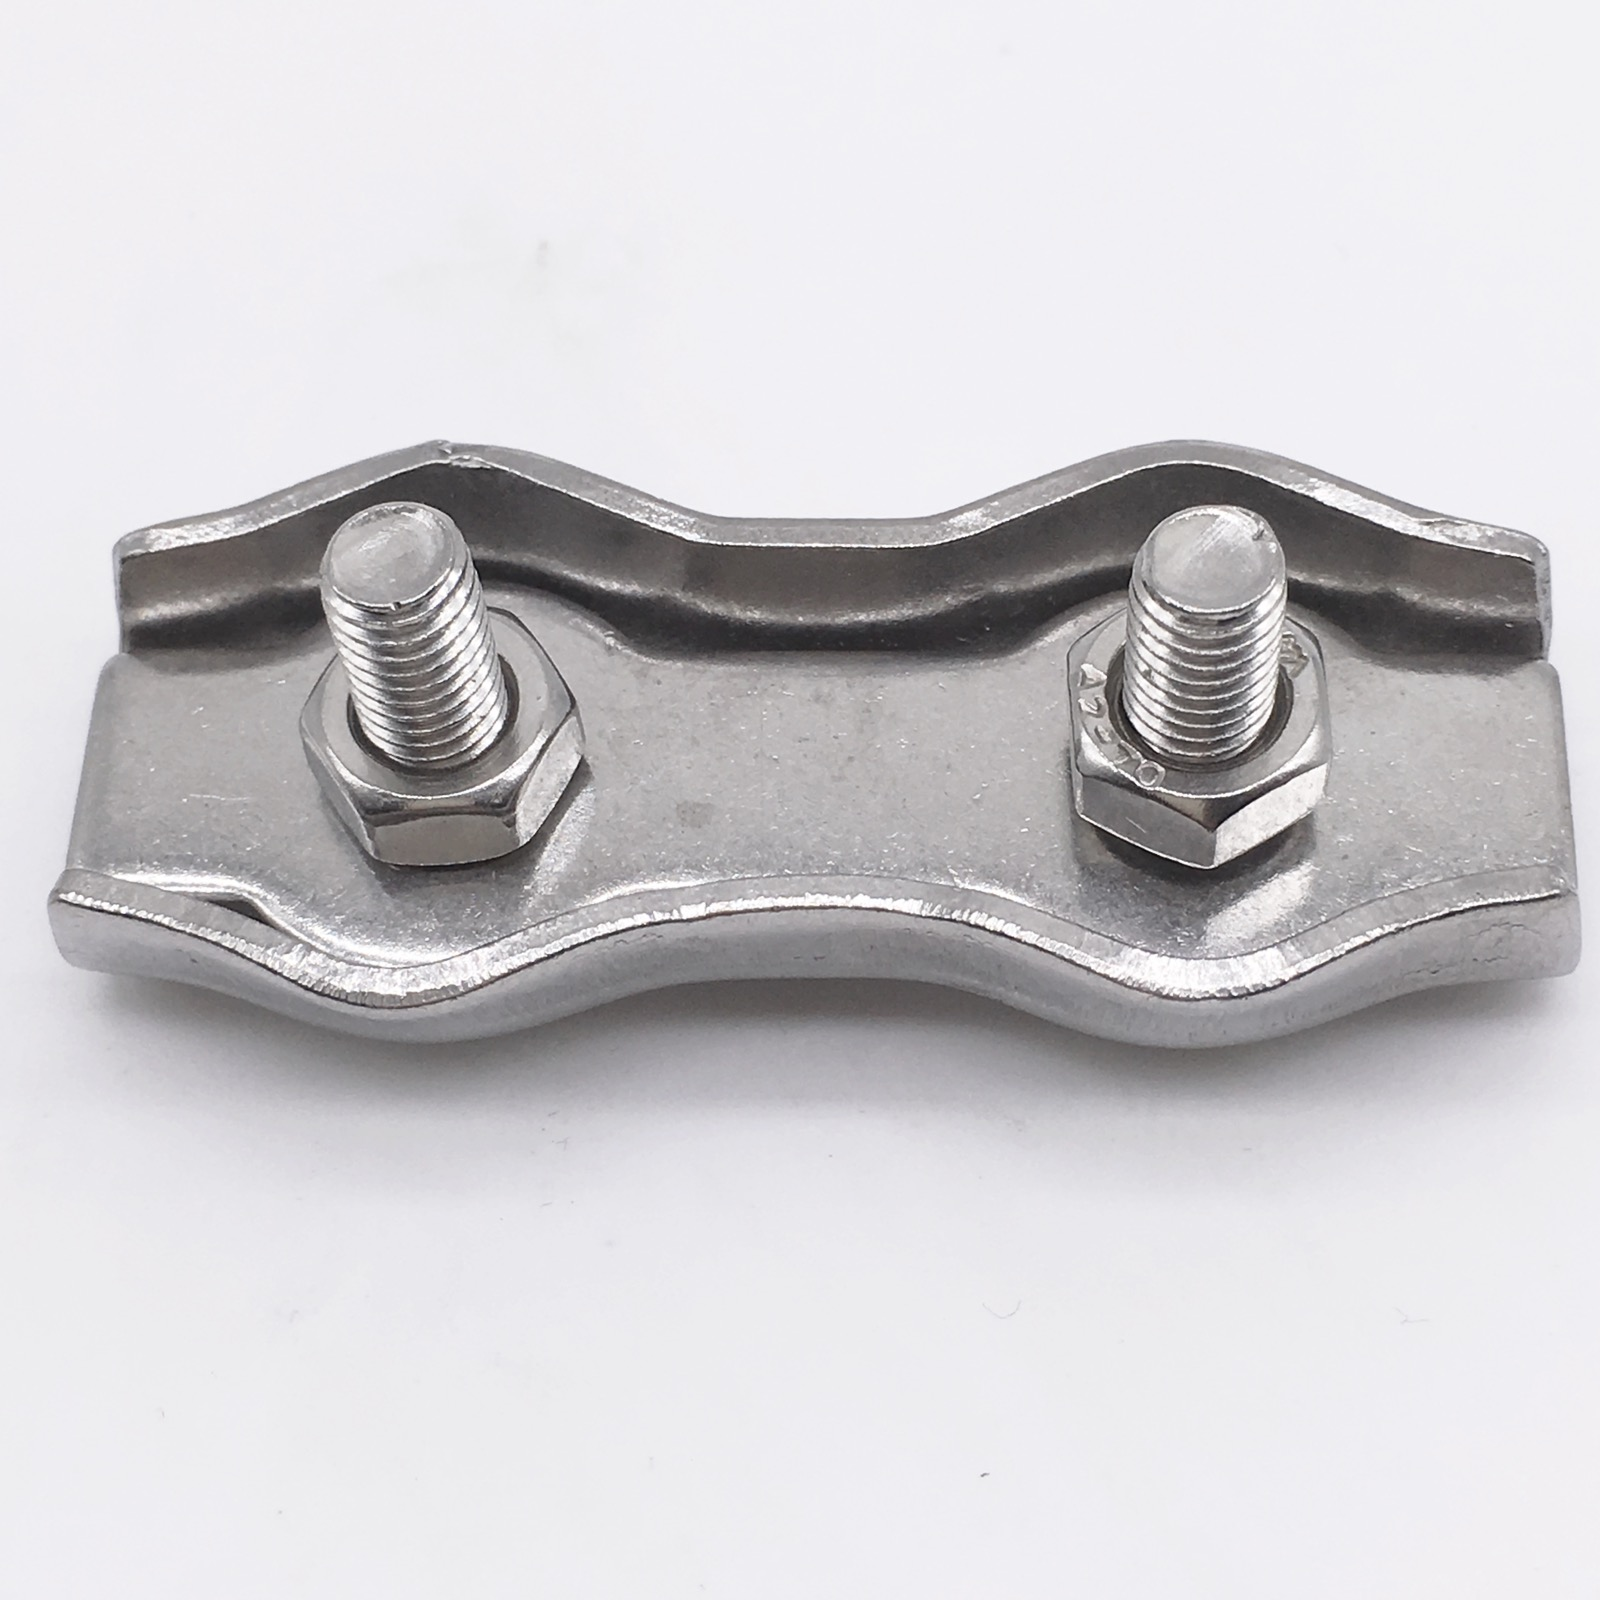 ୧ʕ ʔ୨M2 Stainless Steel Duplex 2-Post Wire Rope Clip Cable Clamp ...